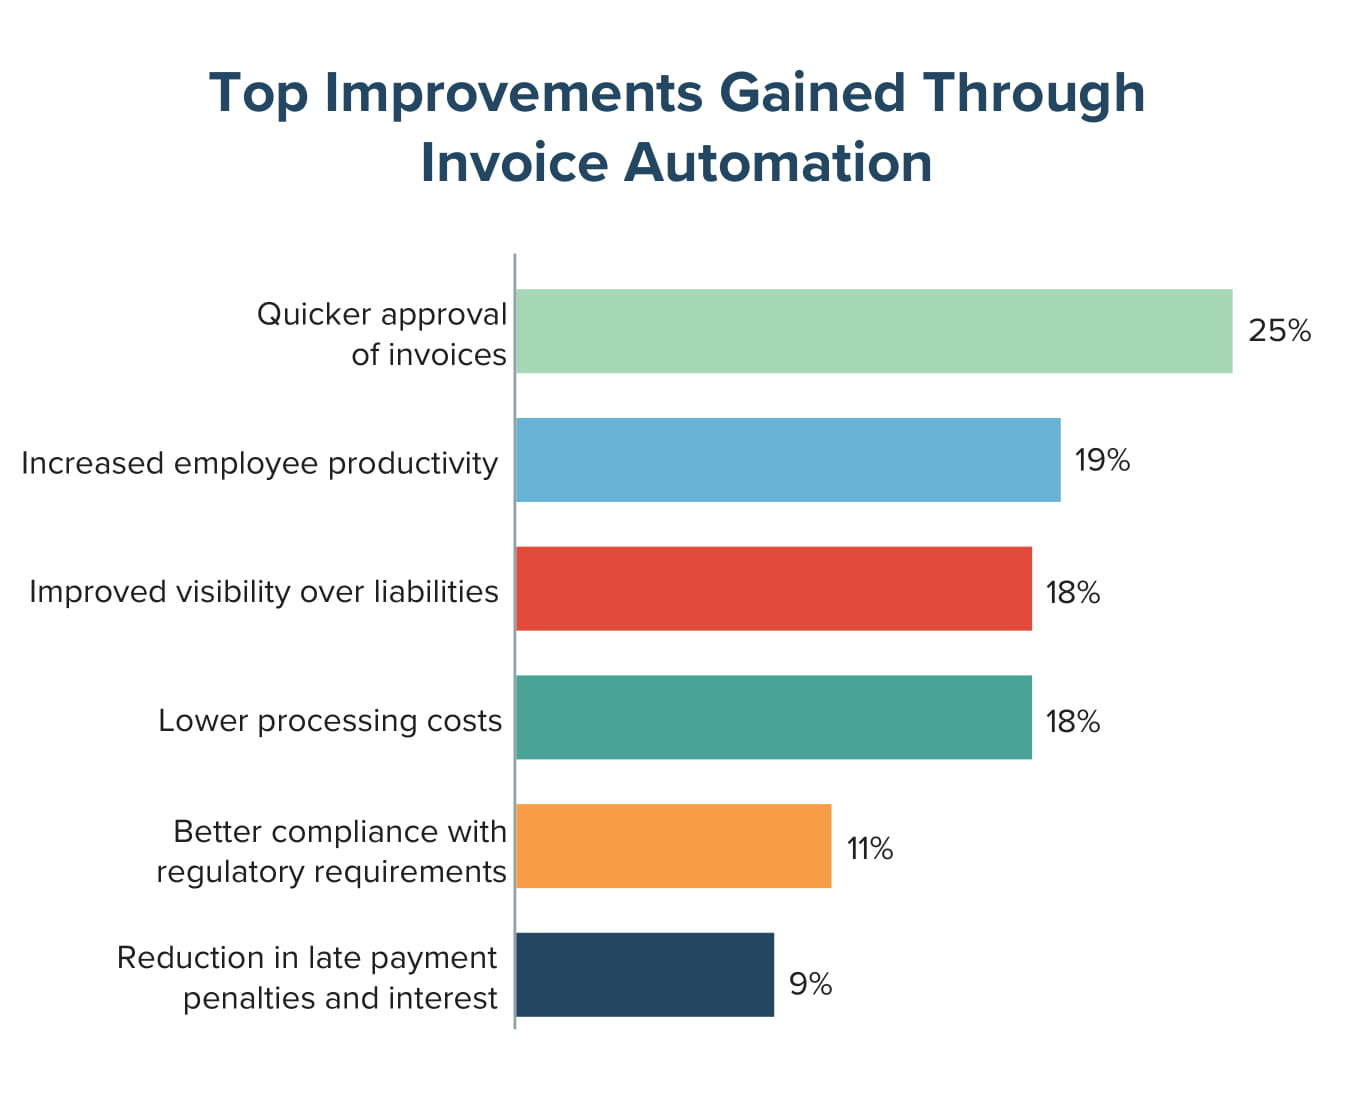 Top Improvements Gained Through Invoice Automation